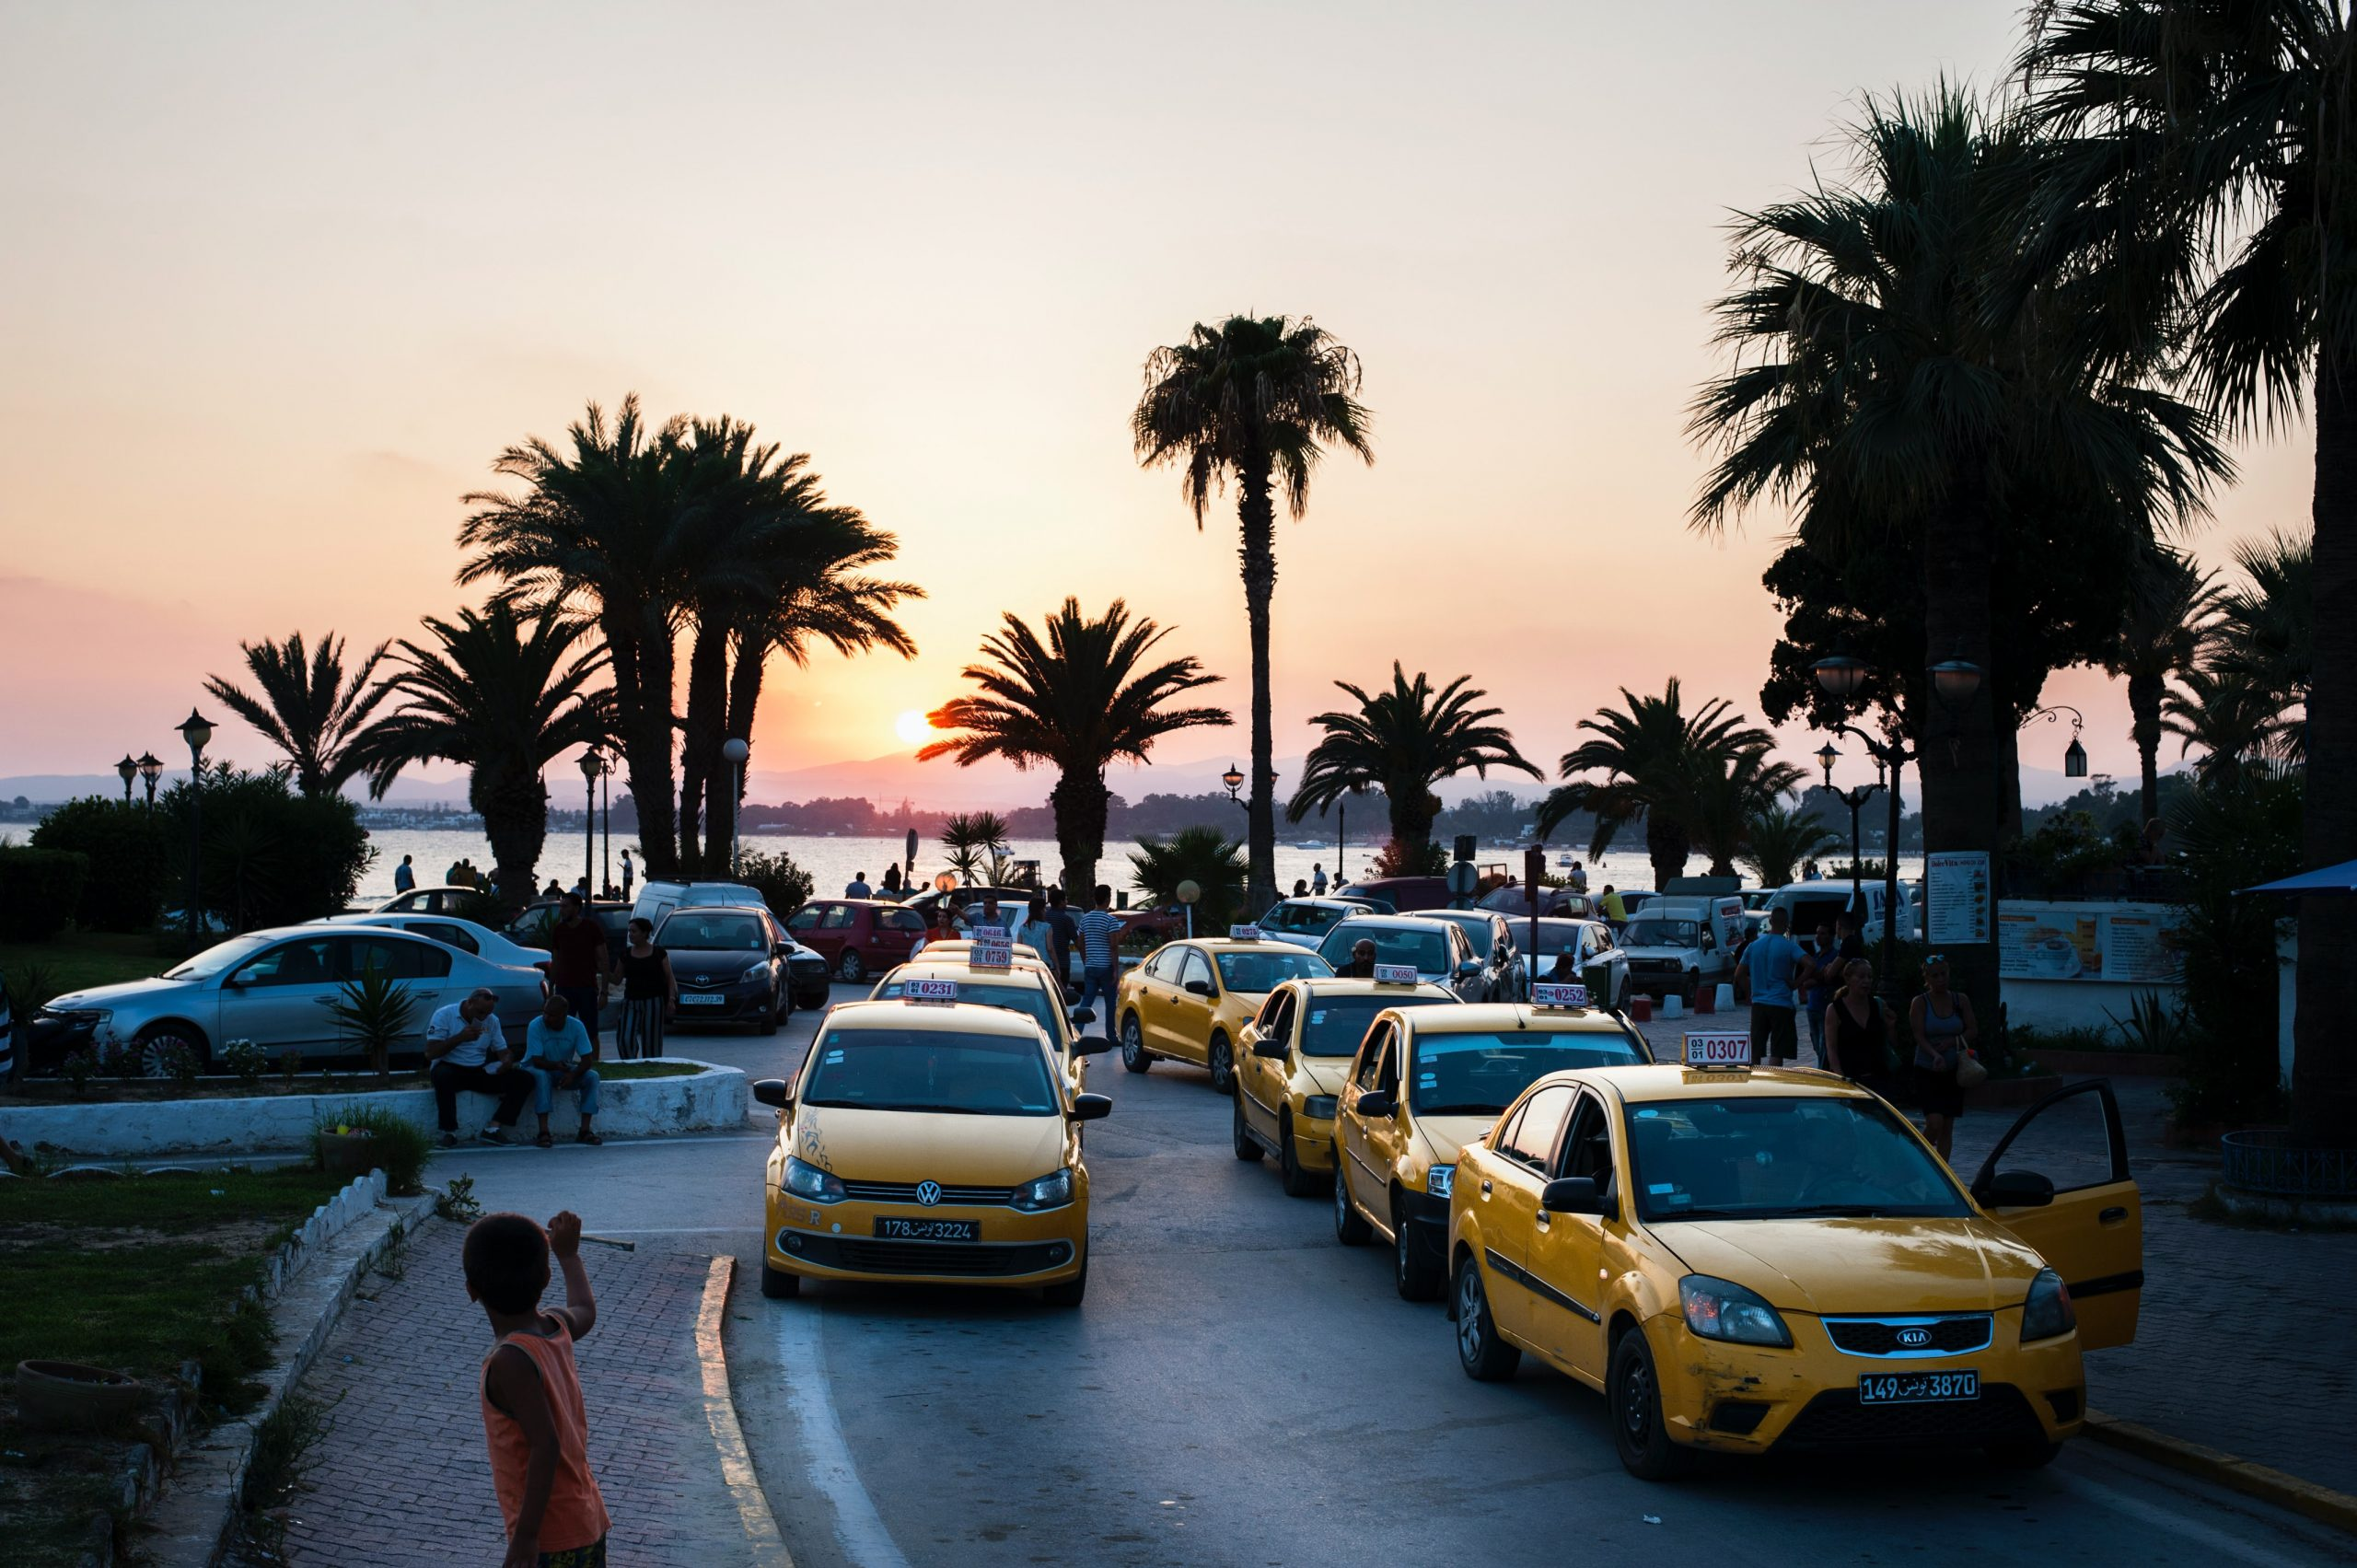 Taxi-scaled-1 10 Reasons Why Tourists Should Visit Tunisia This Summer